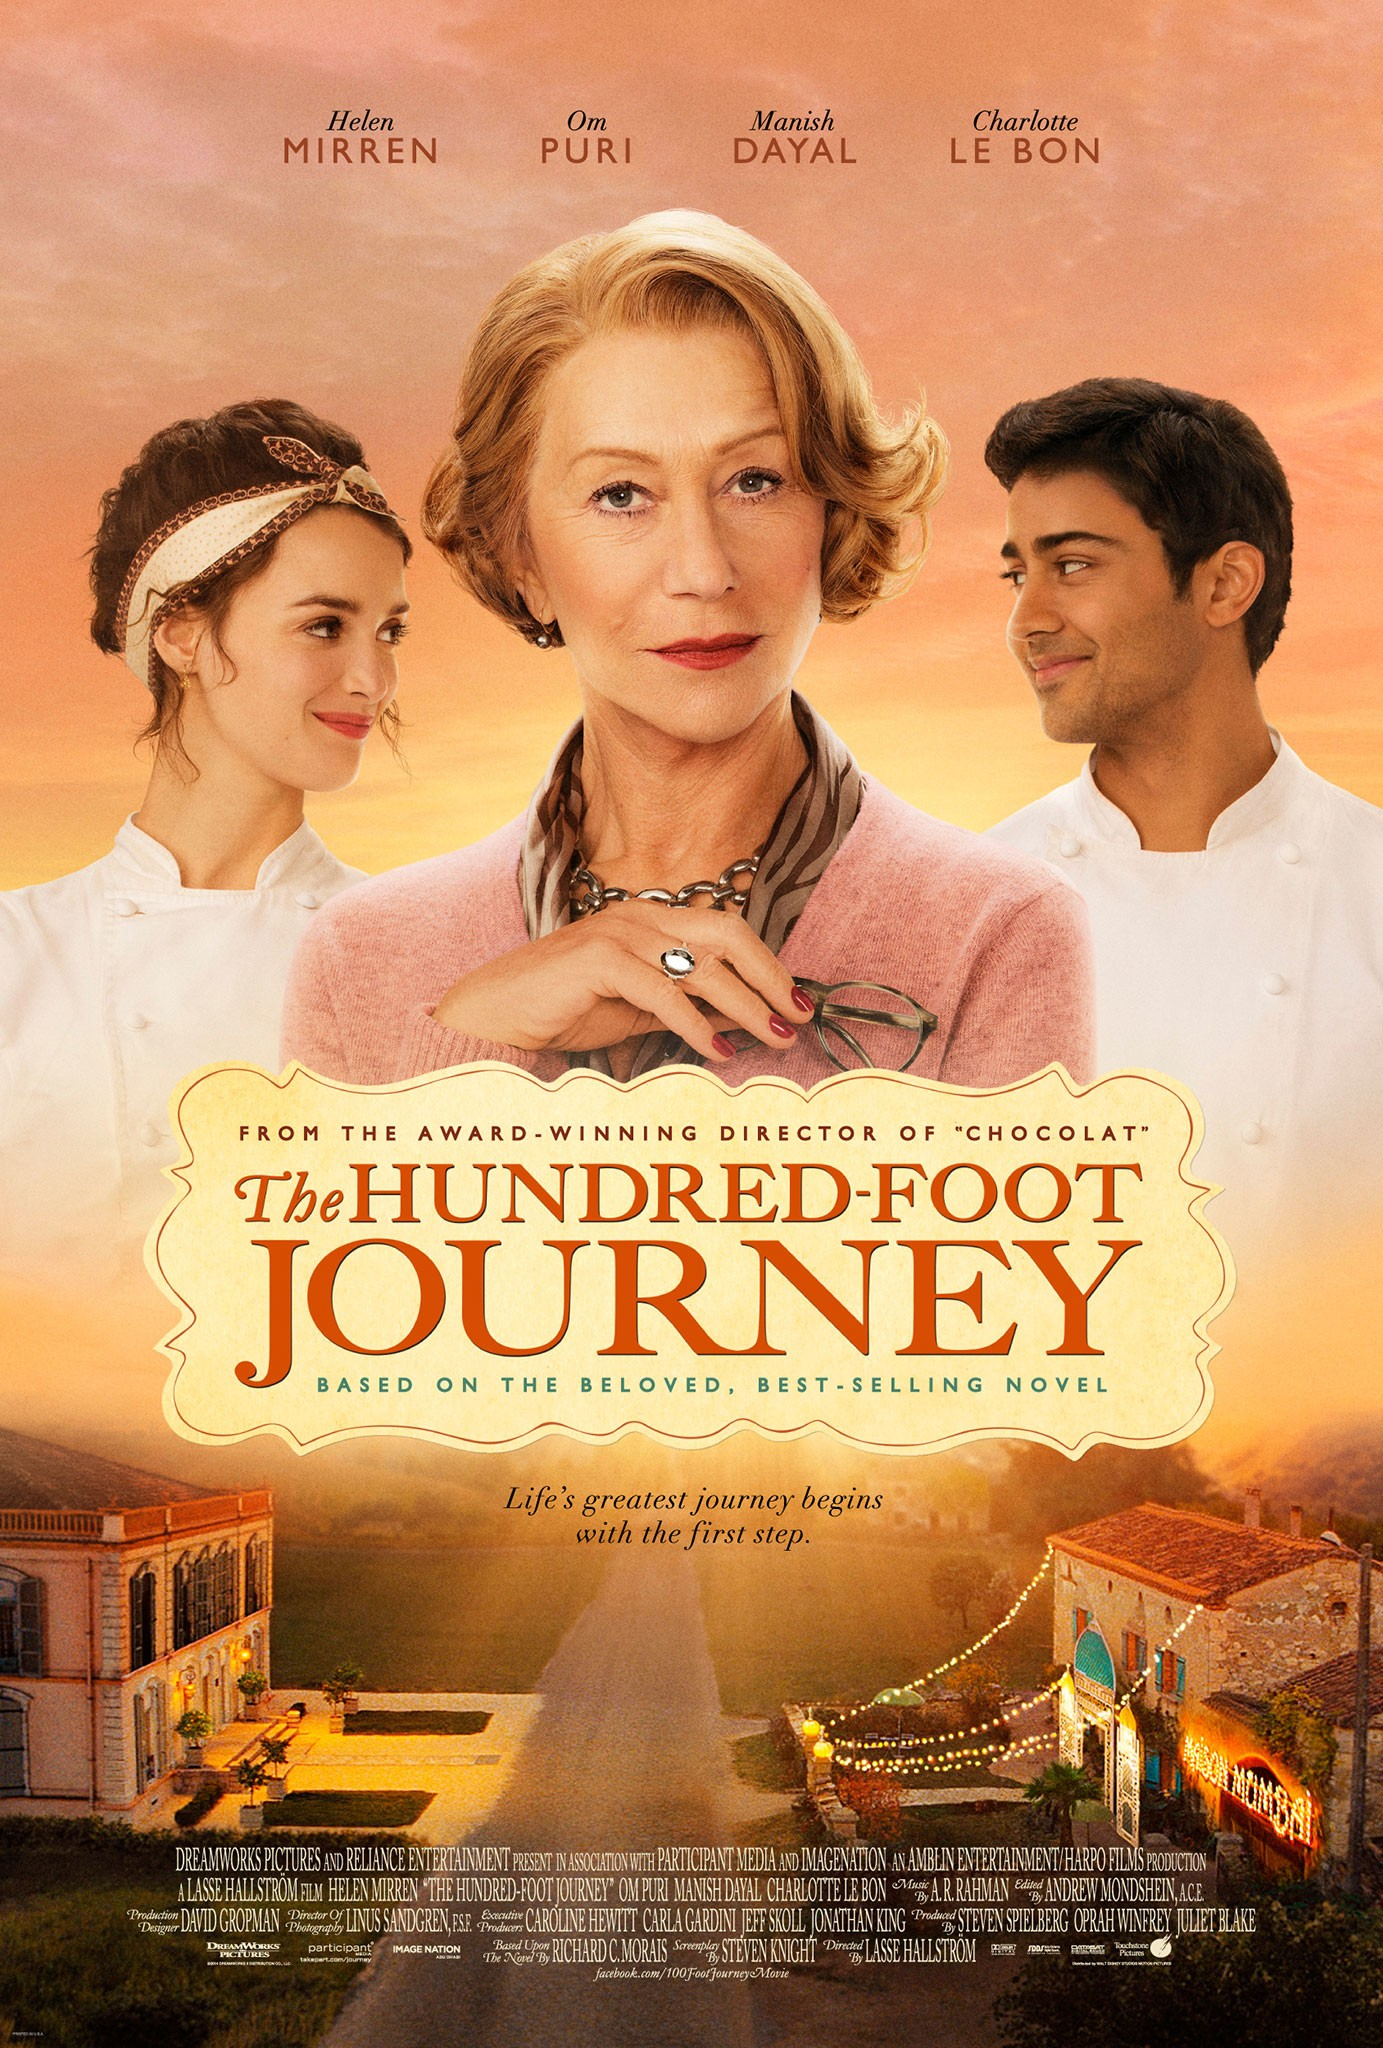 THE HUNDRED-FOOT JOURNEY-Official Poster Banner PROMO-14MAIO2014-03